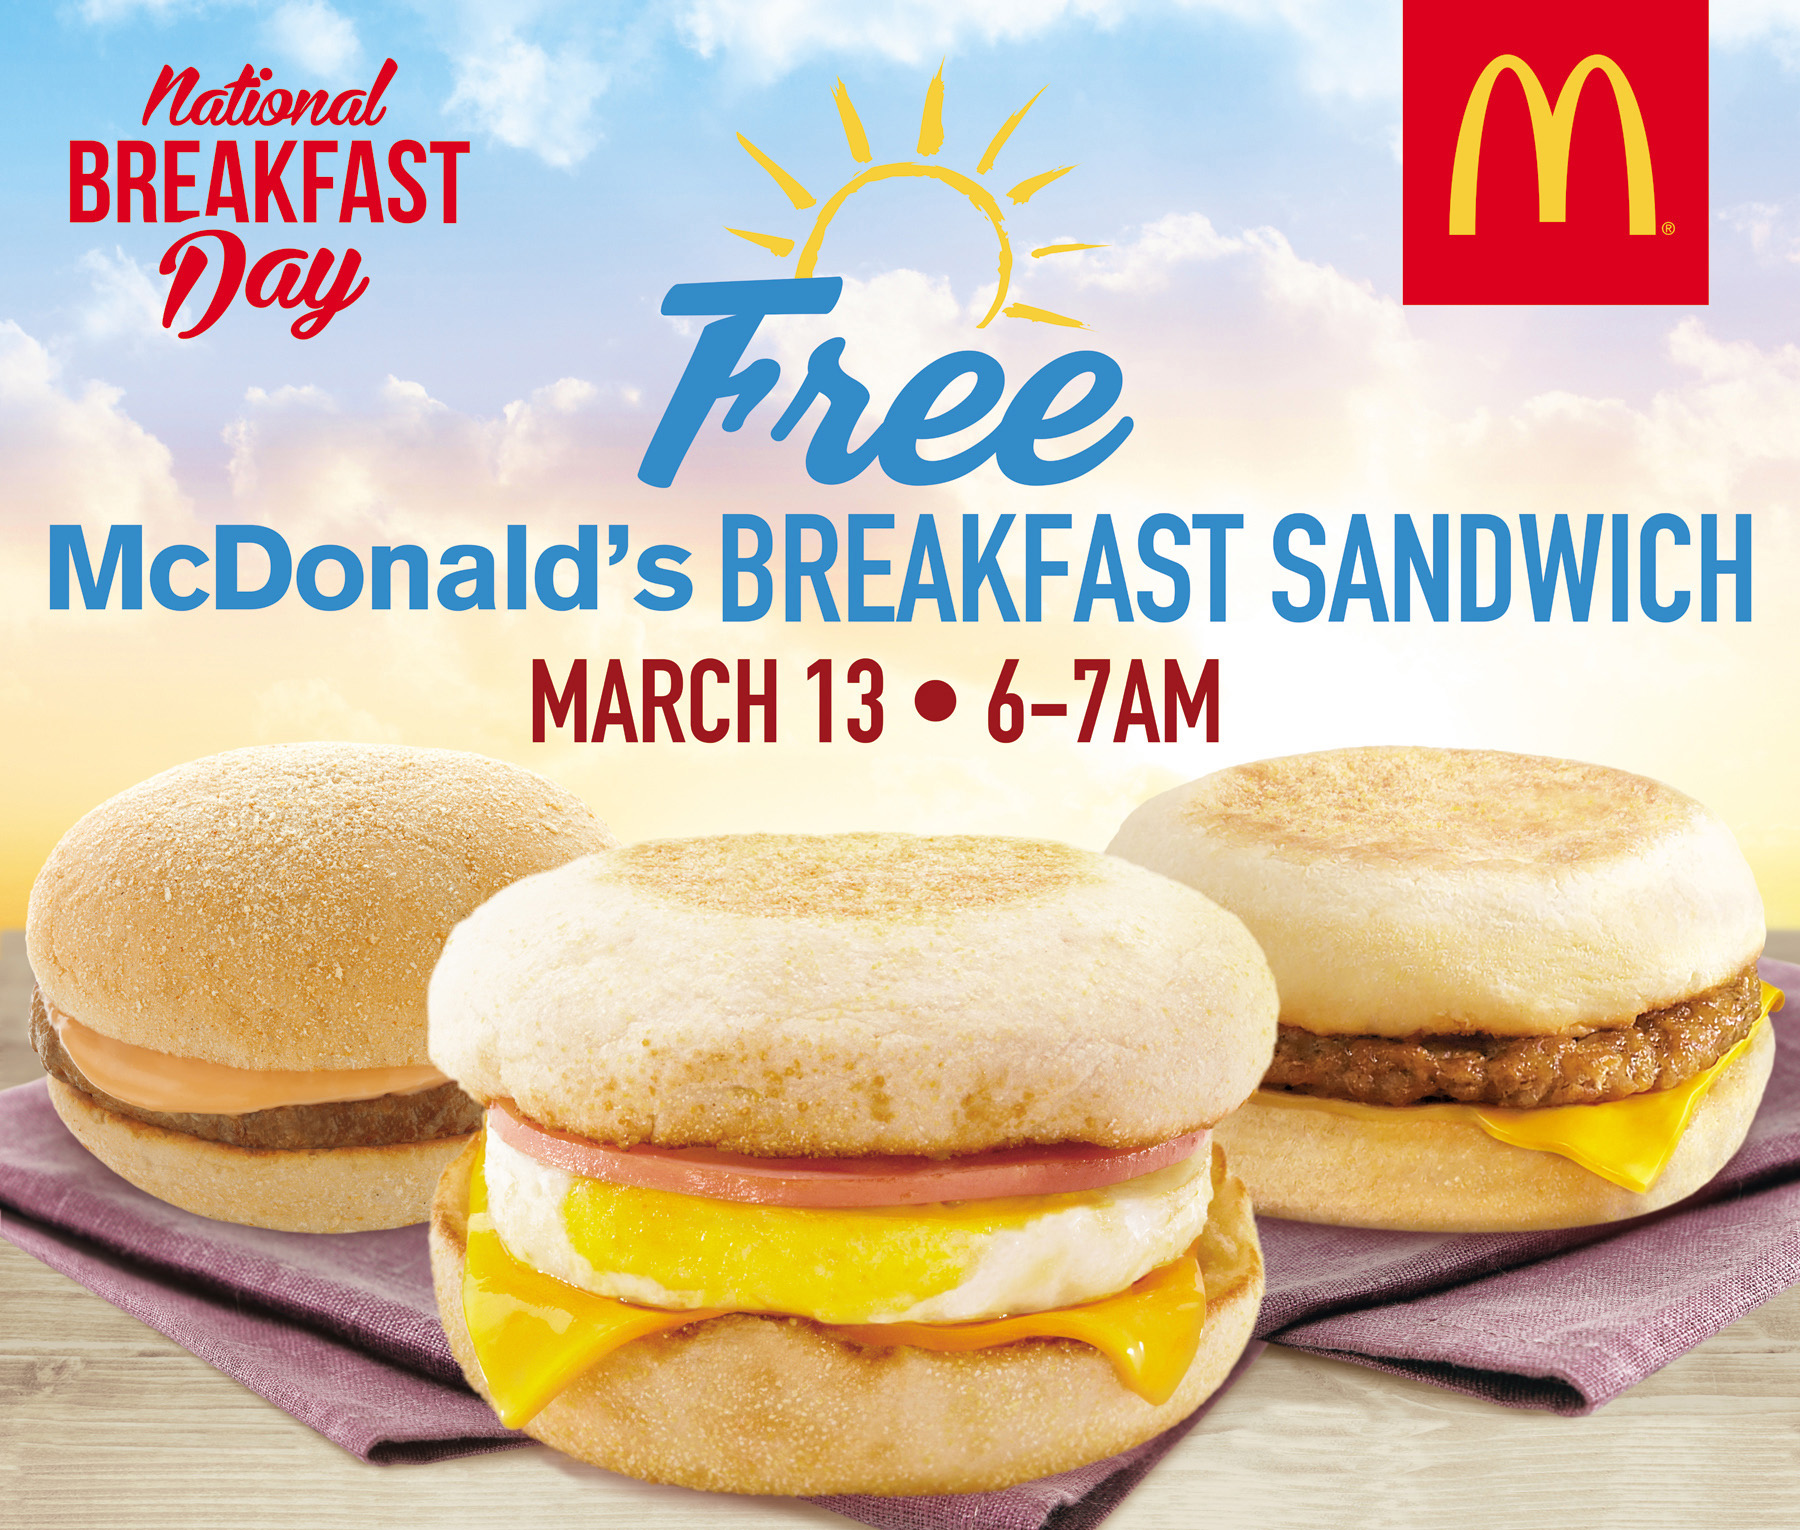 McDonald's celebrates the 5th National Breakfast Day on May 13, 2017, Monday